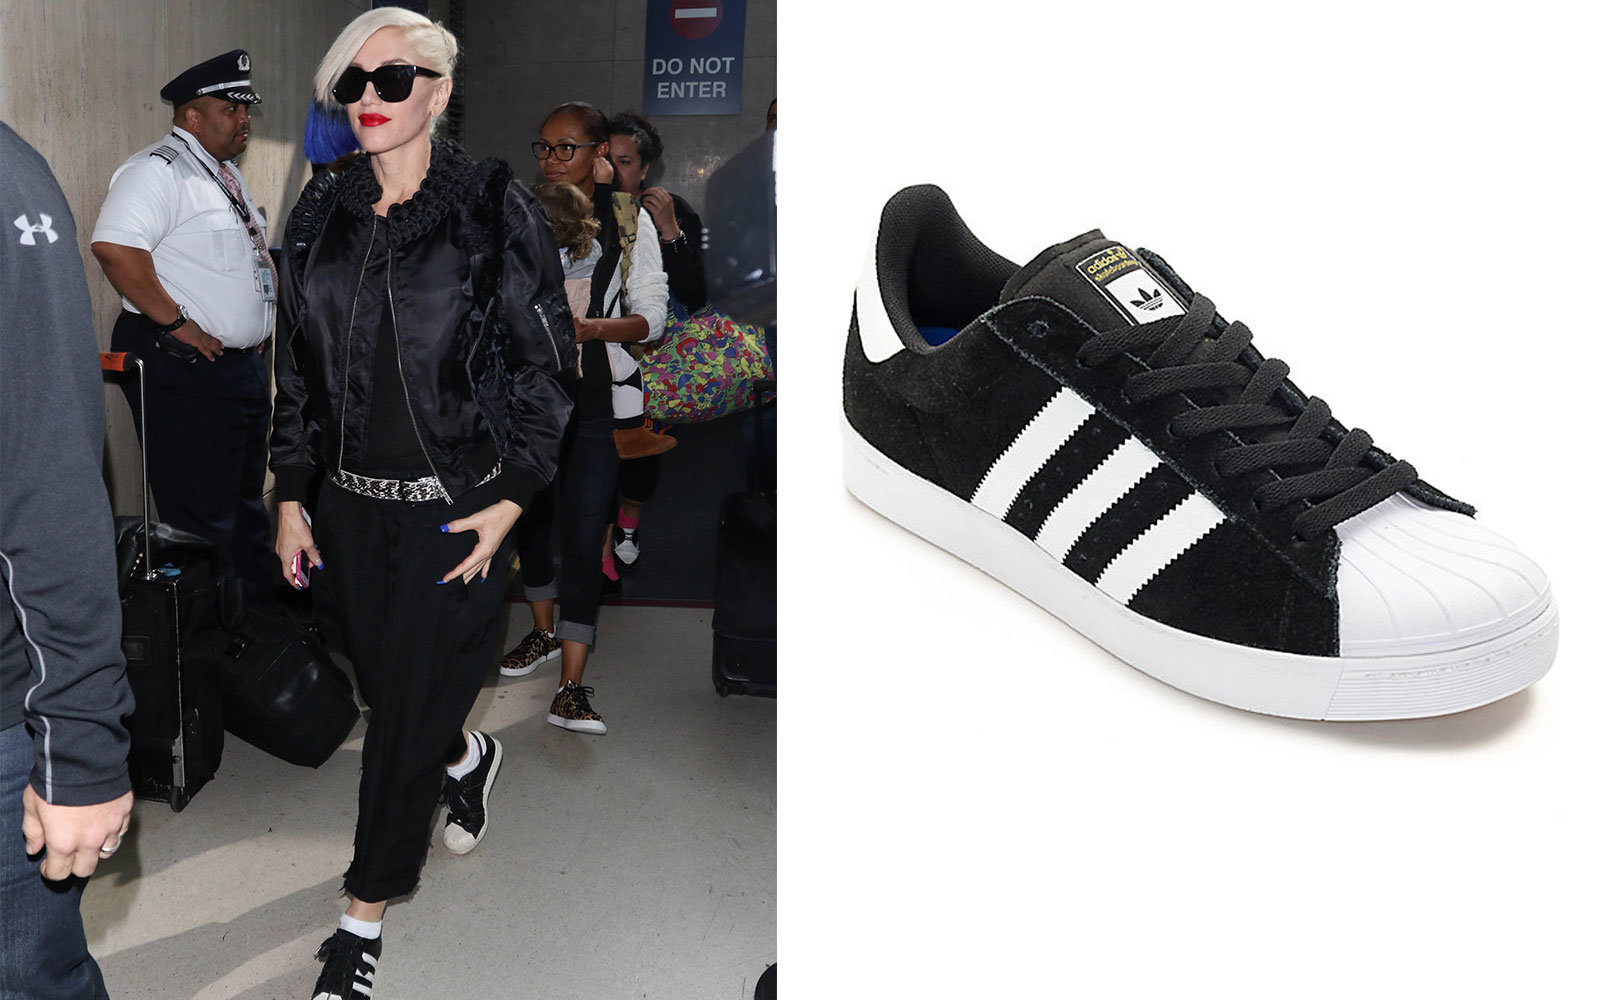 Gwen Stefani in Black and White Adidas Superstars